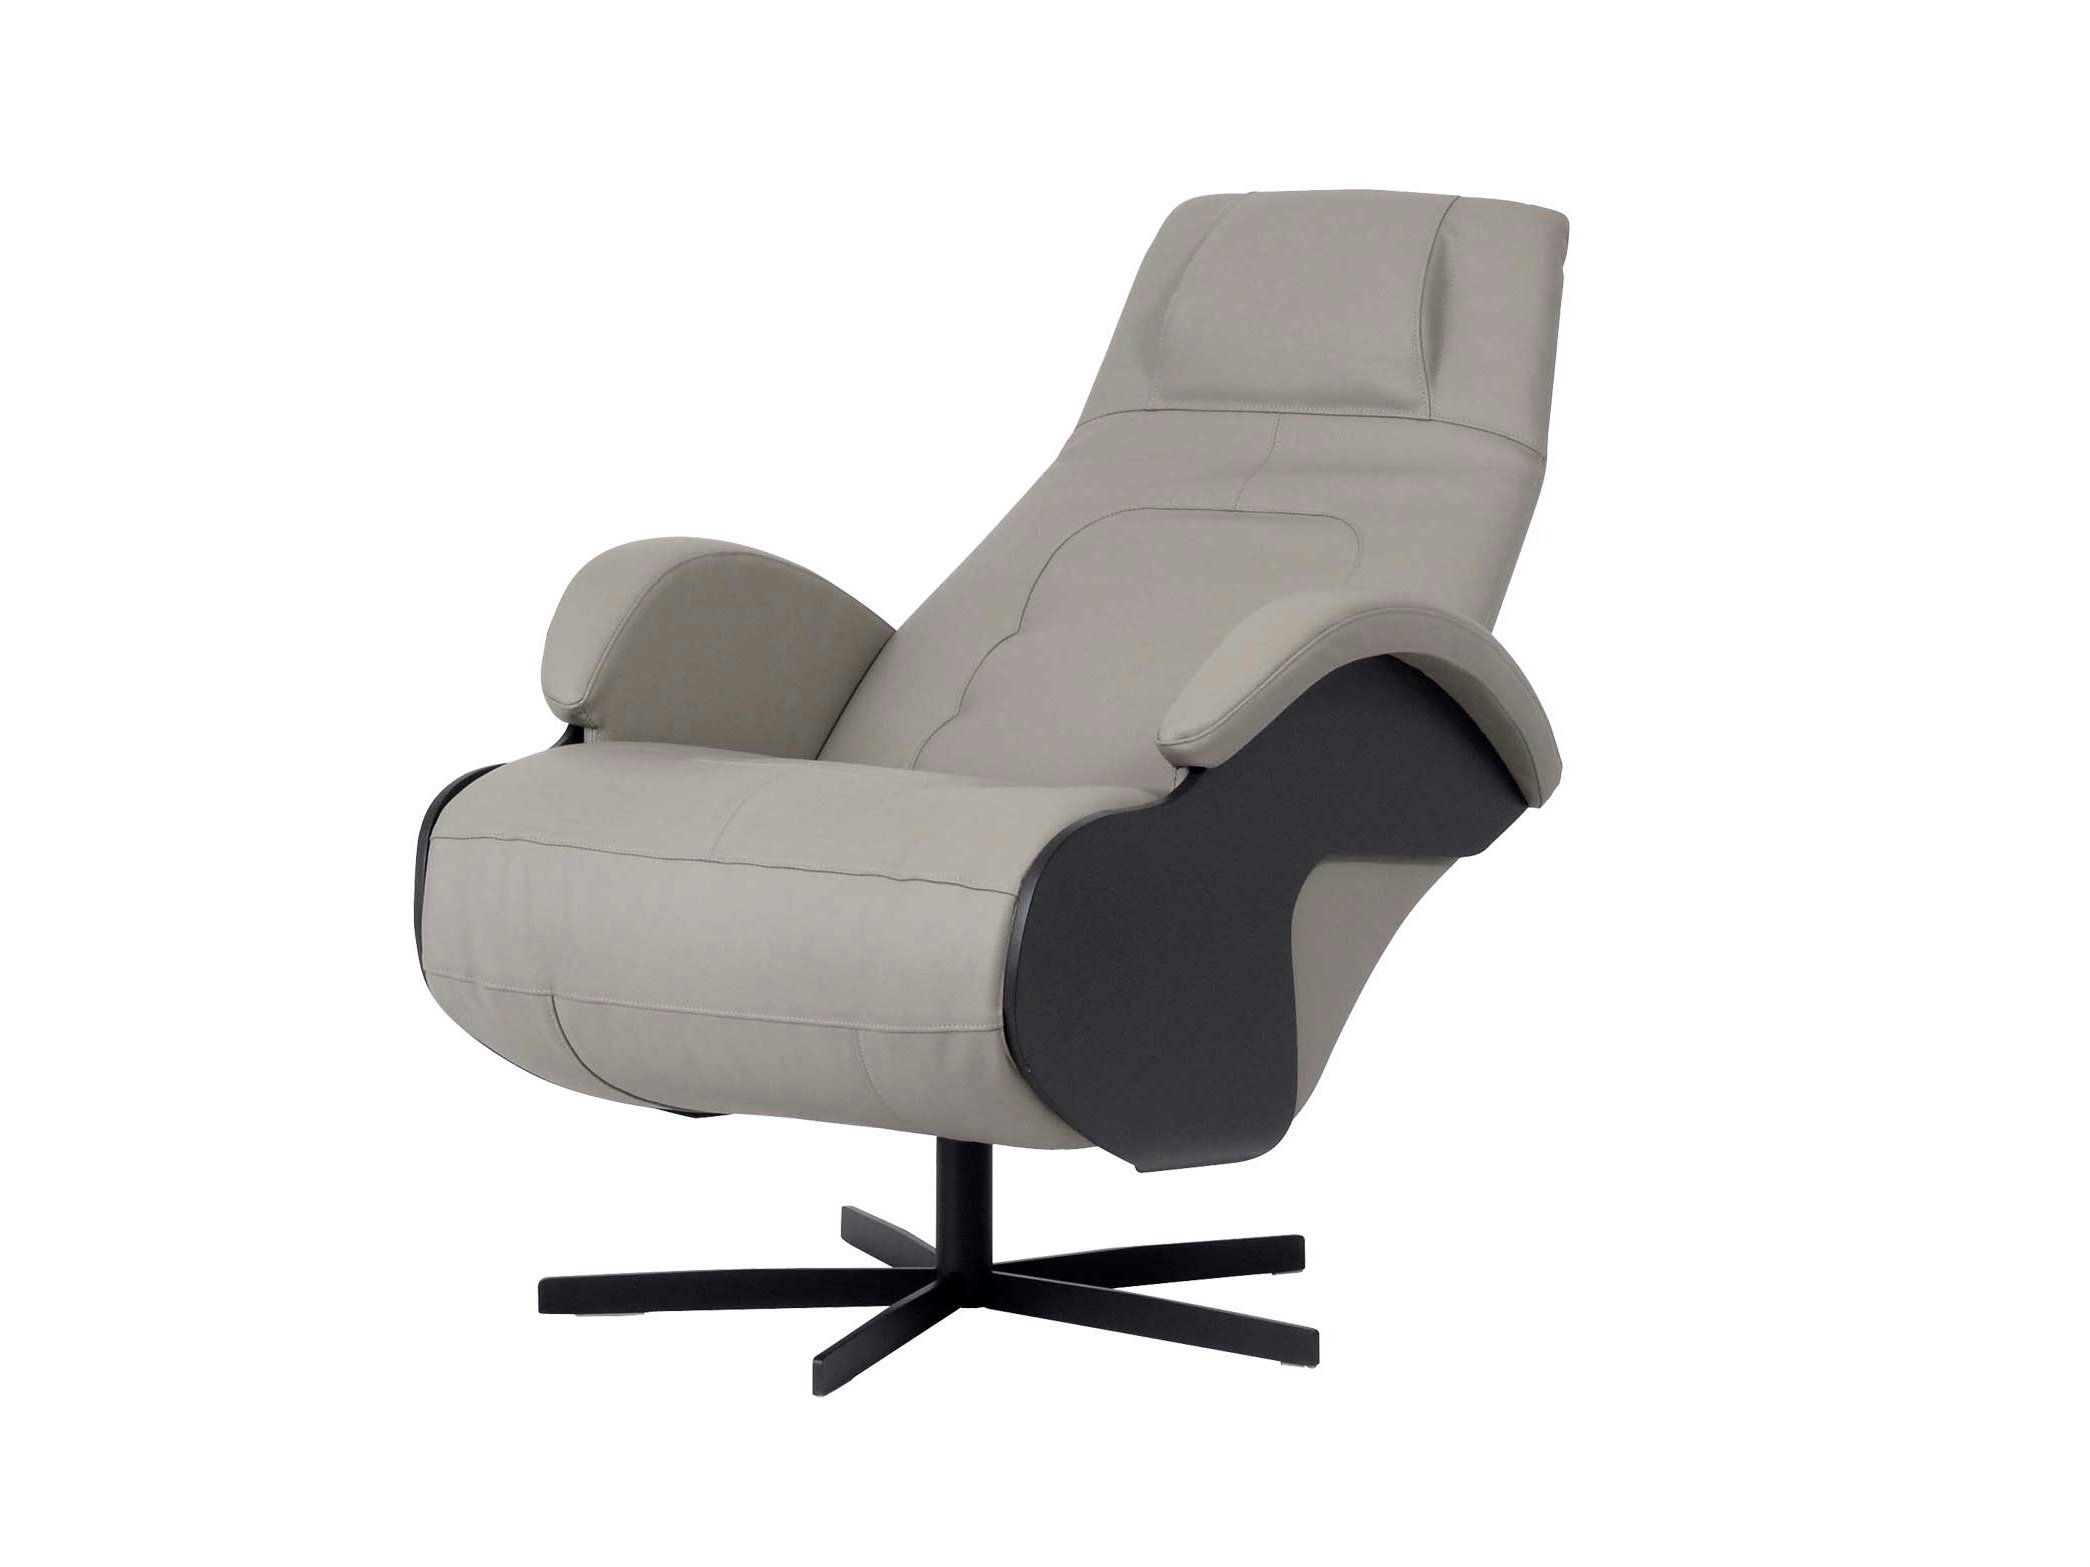 Recliner armchair with motorised functions first class les contemporains coll - Fauteuil roche bobois prix ...